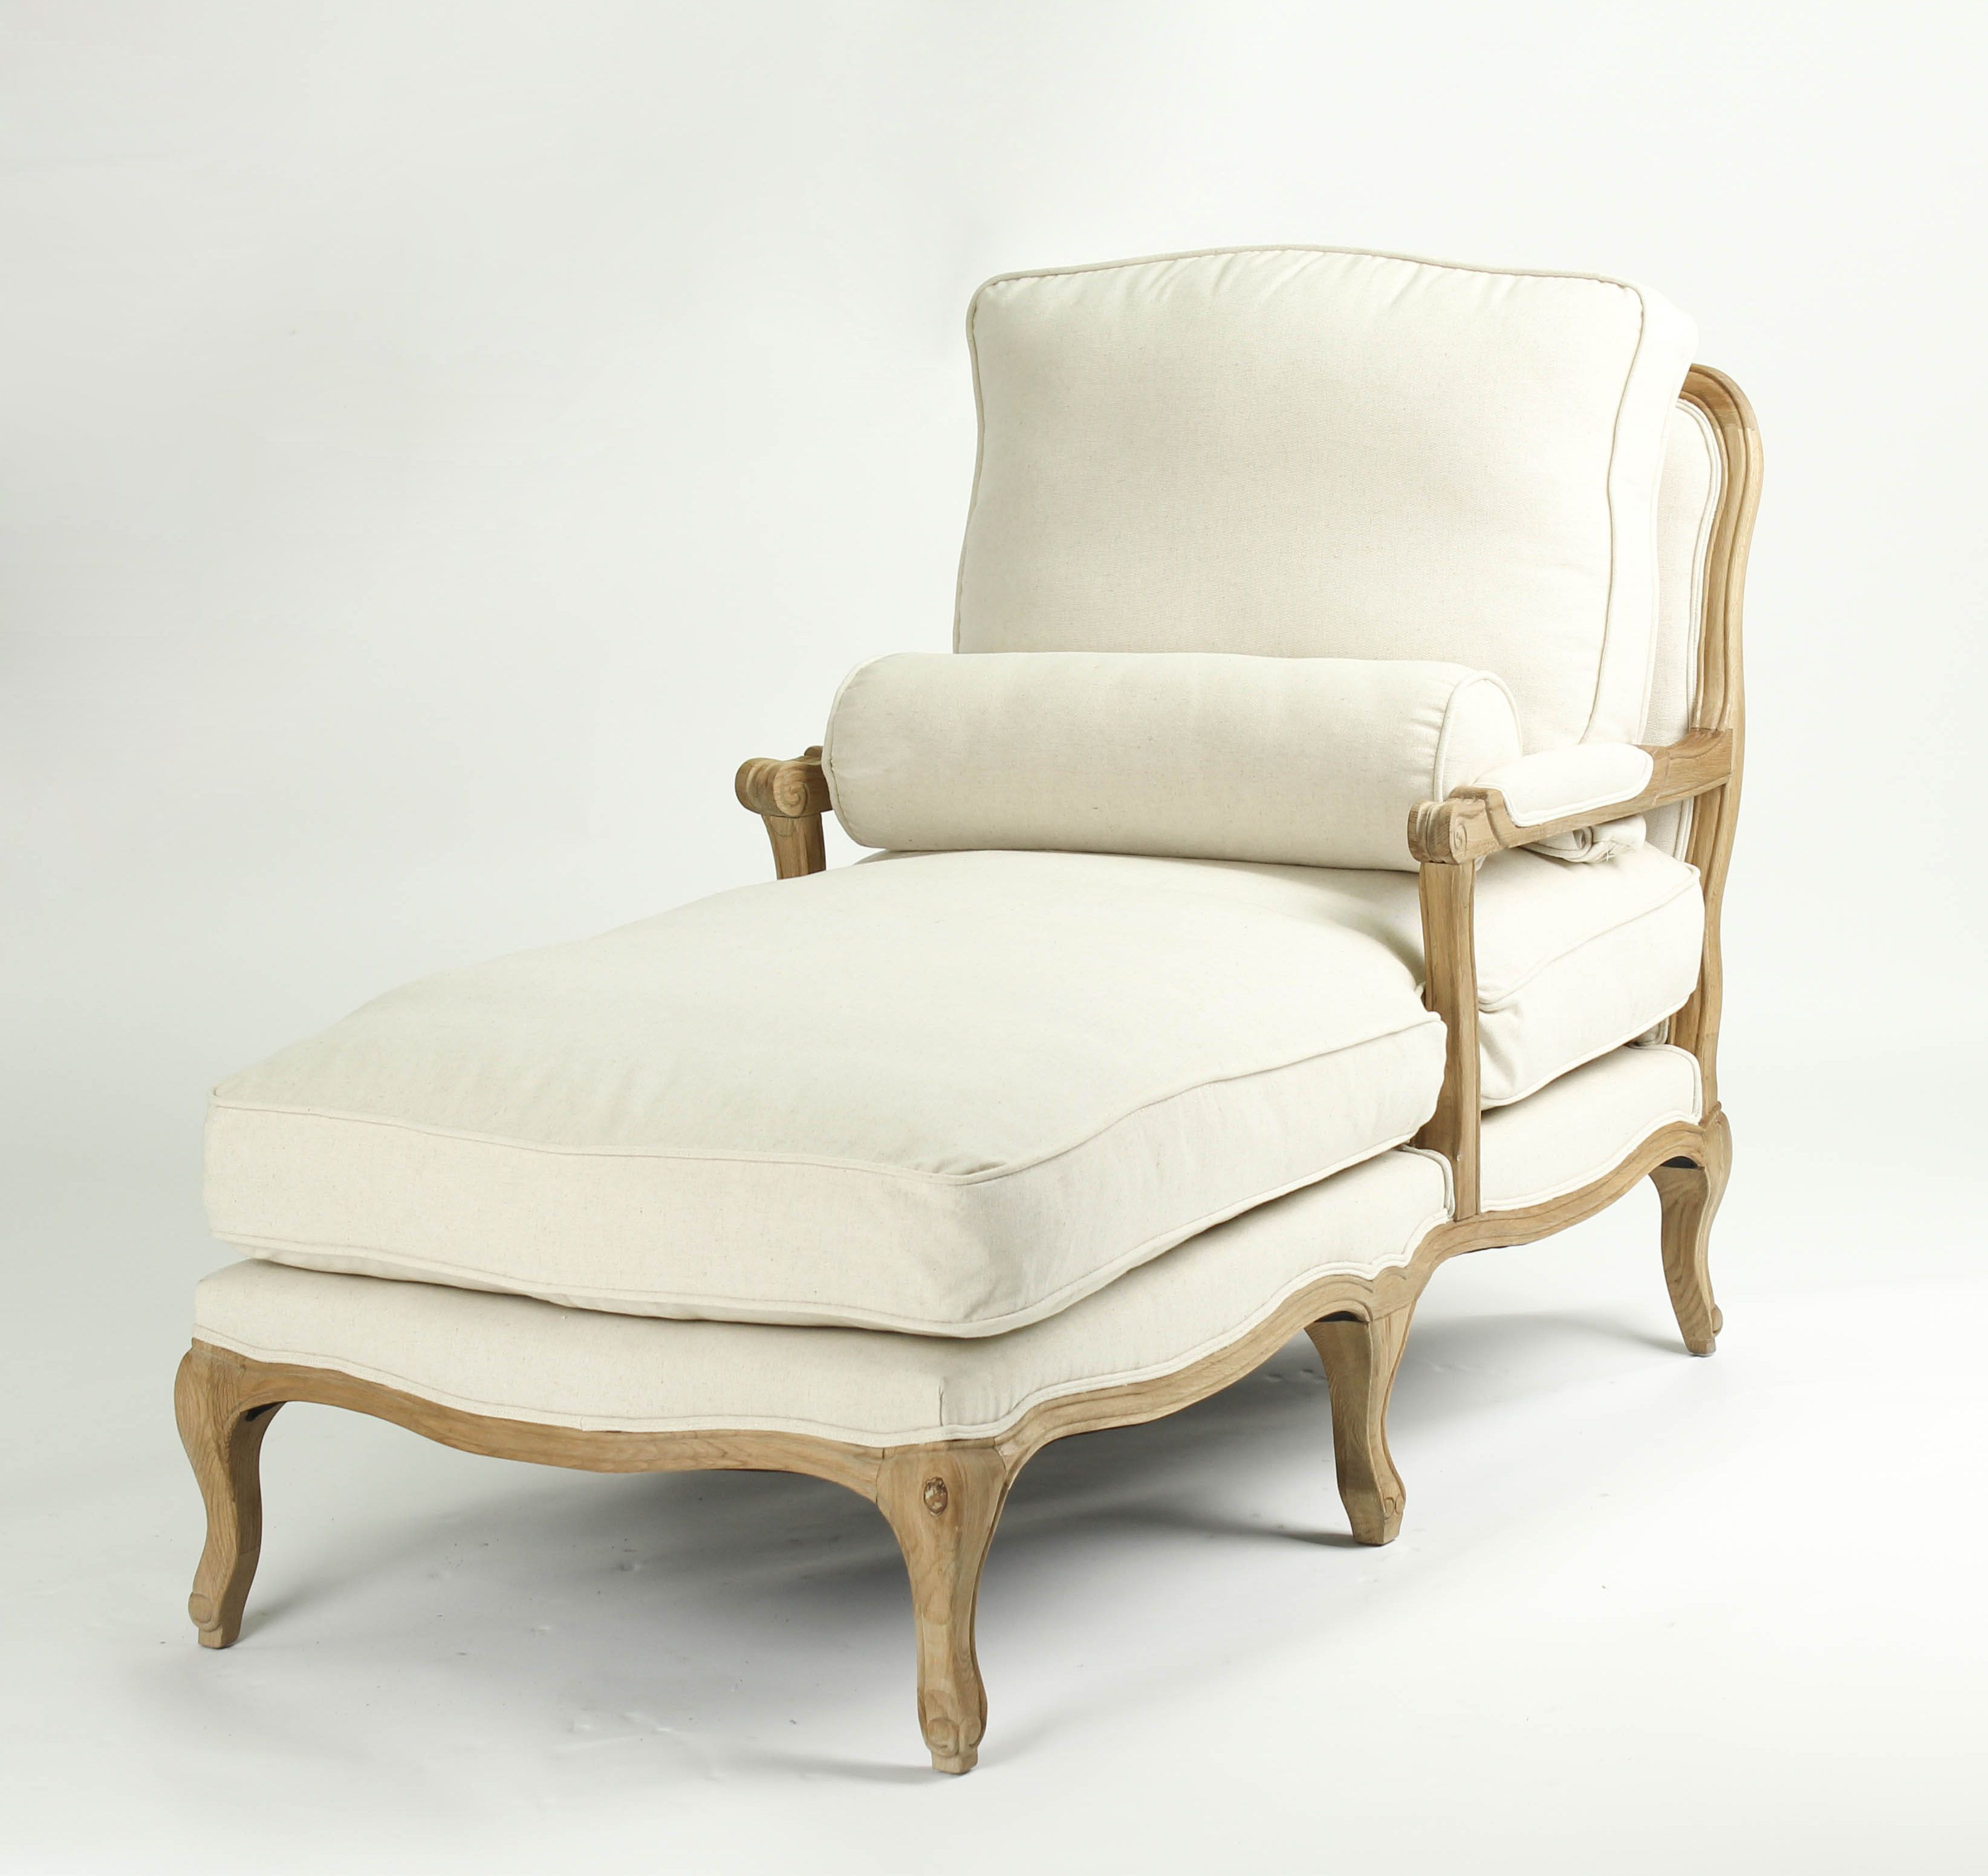 French Country Chaise Lounge Google Search